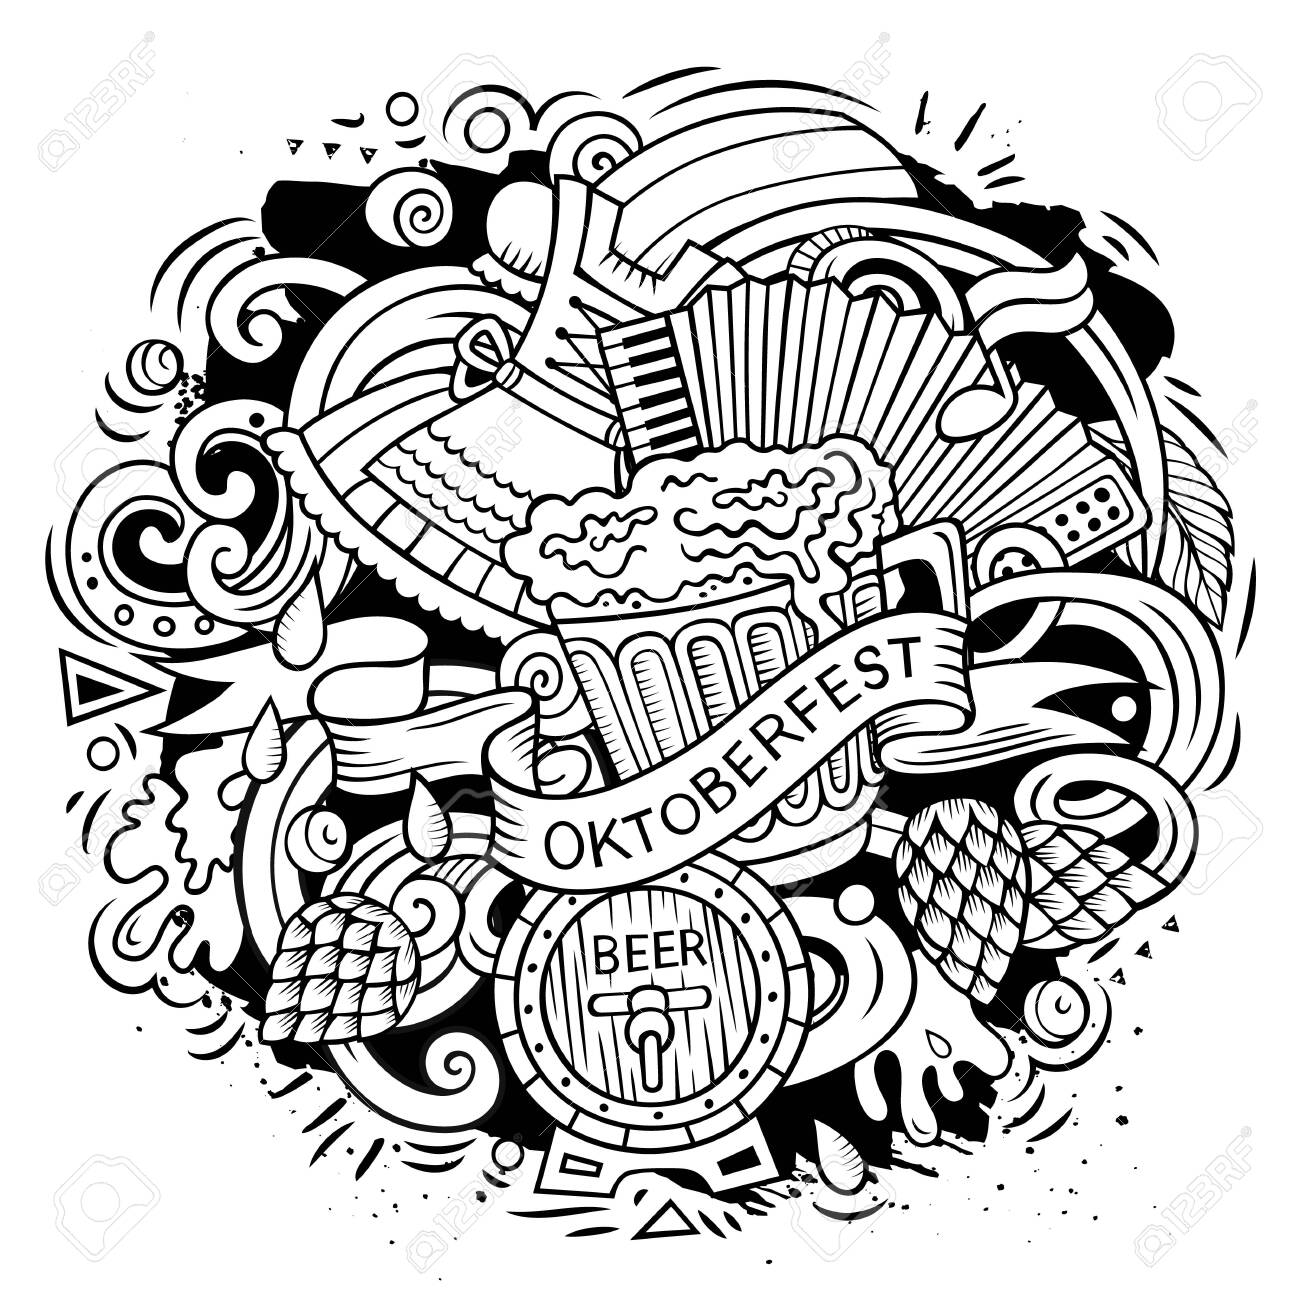 Top 20 Printable Oktoberfest Coloring Pages - Online Coloring Pages   1300x1300